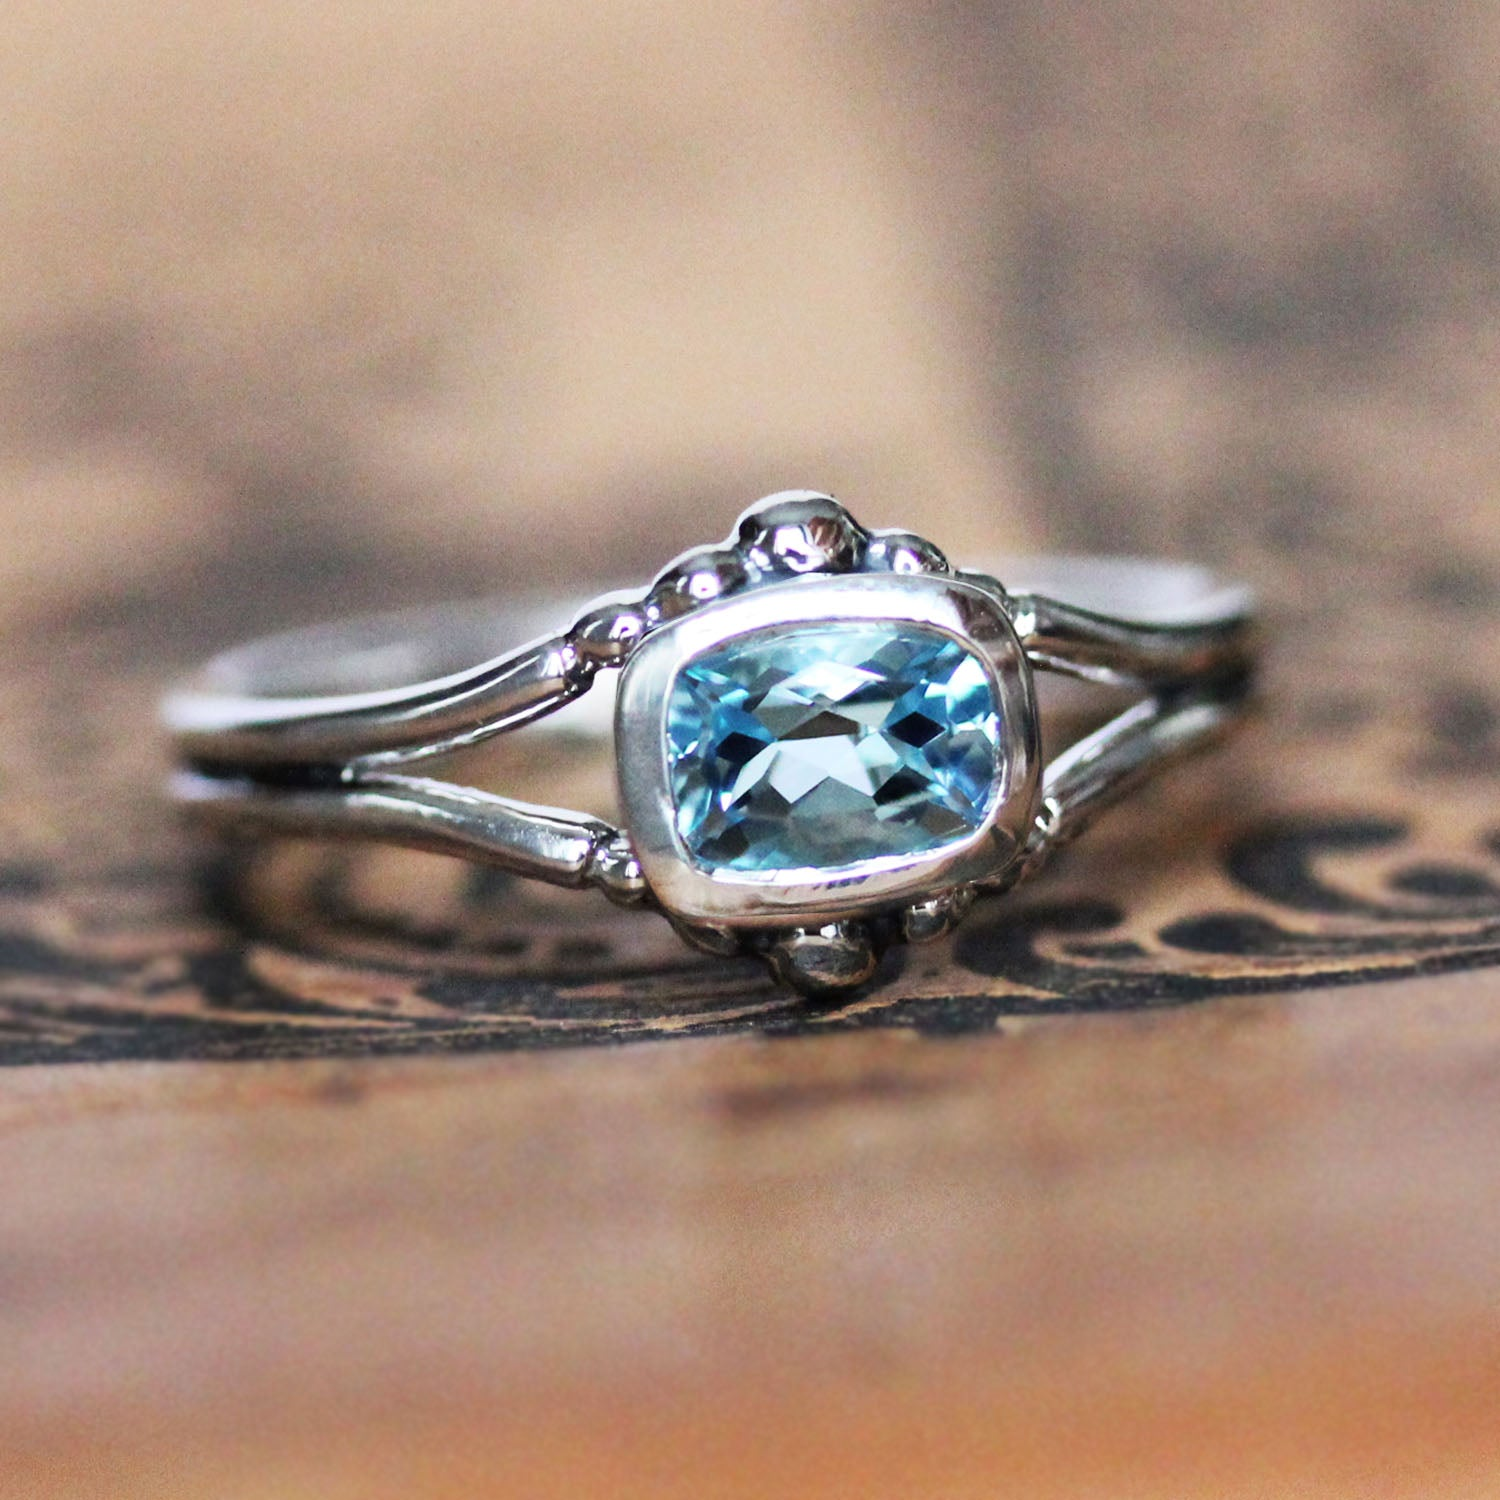 Sterling silver ring with beading and aquamarine gemstone.